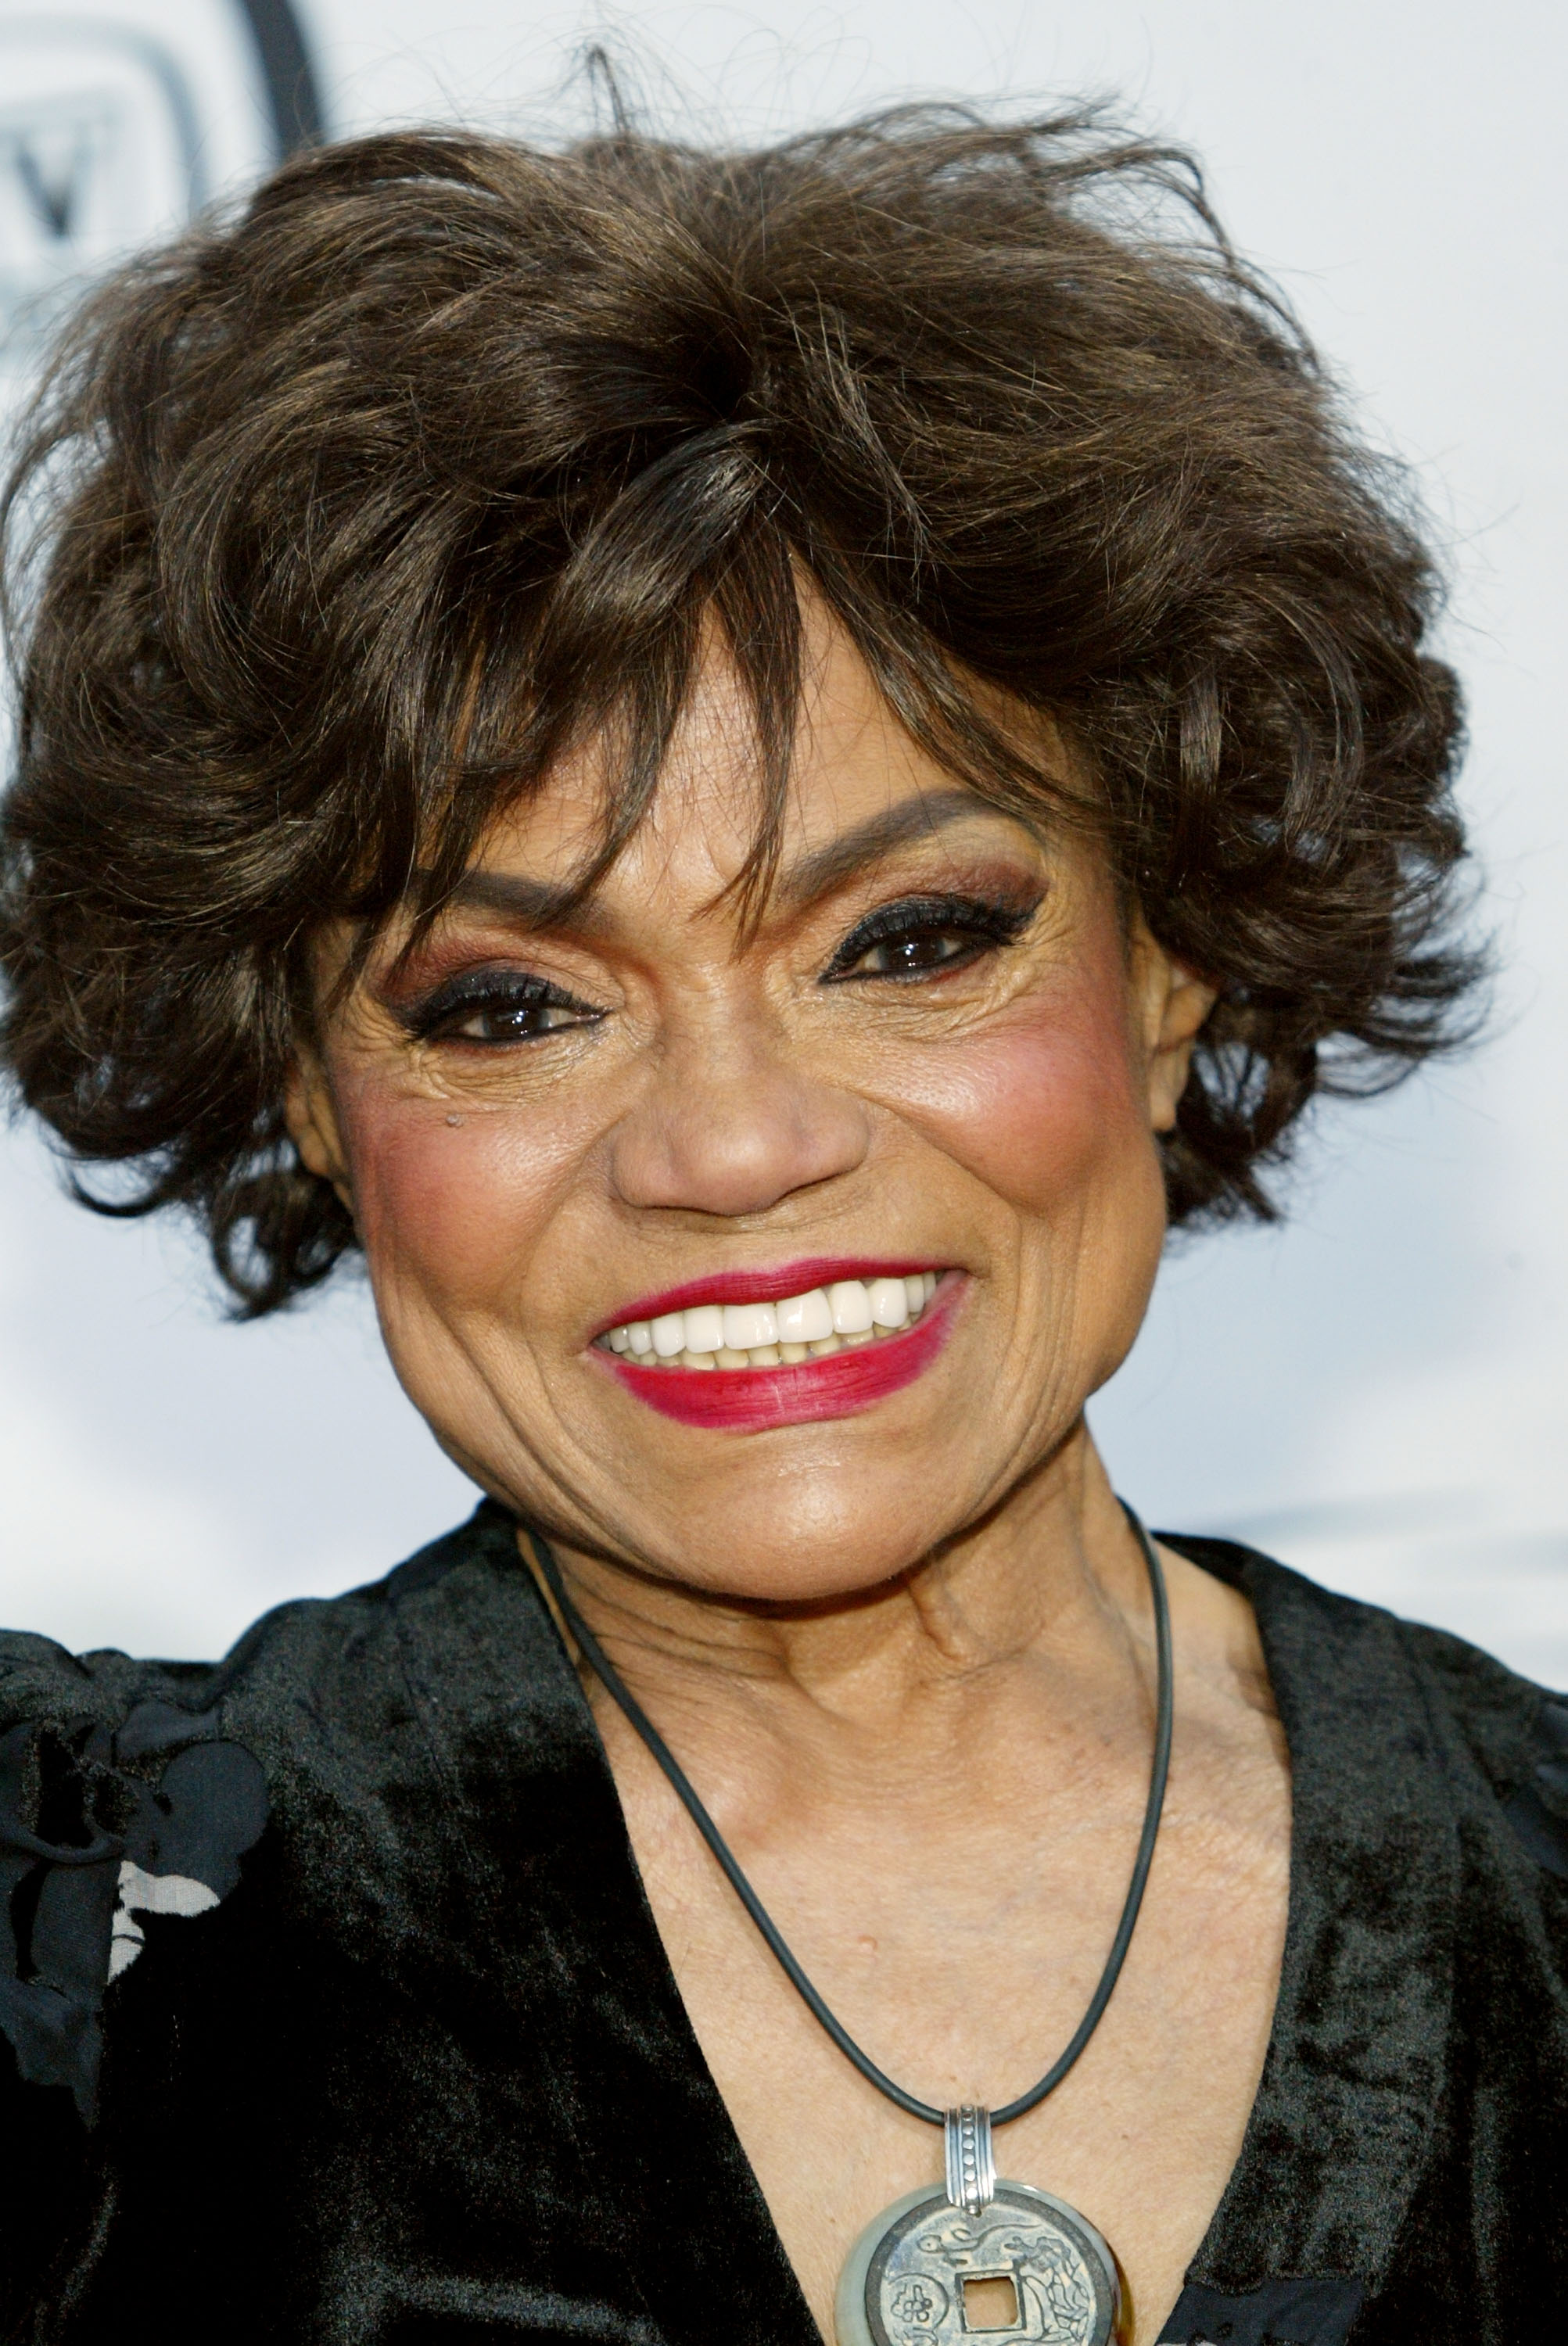 Actress Eartha Kitt attends the 2nd Annual TV Land Awards held on March 7, 2004 at The Hollywood Palladium, in Hollywood, California.